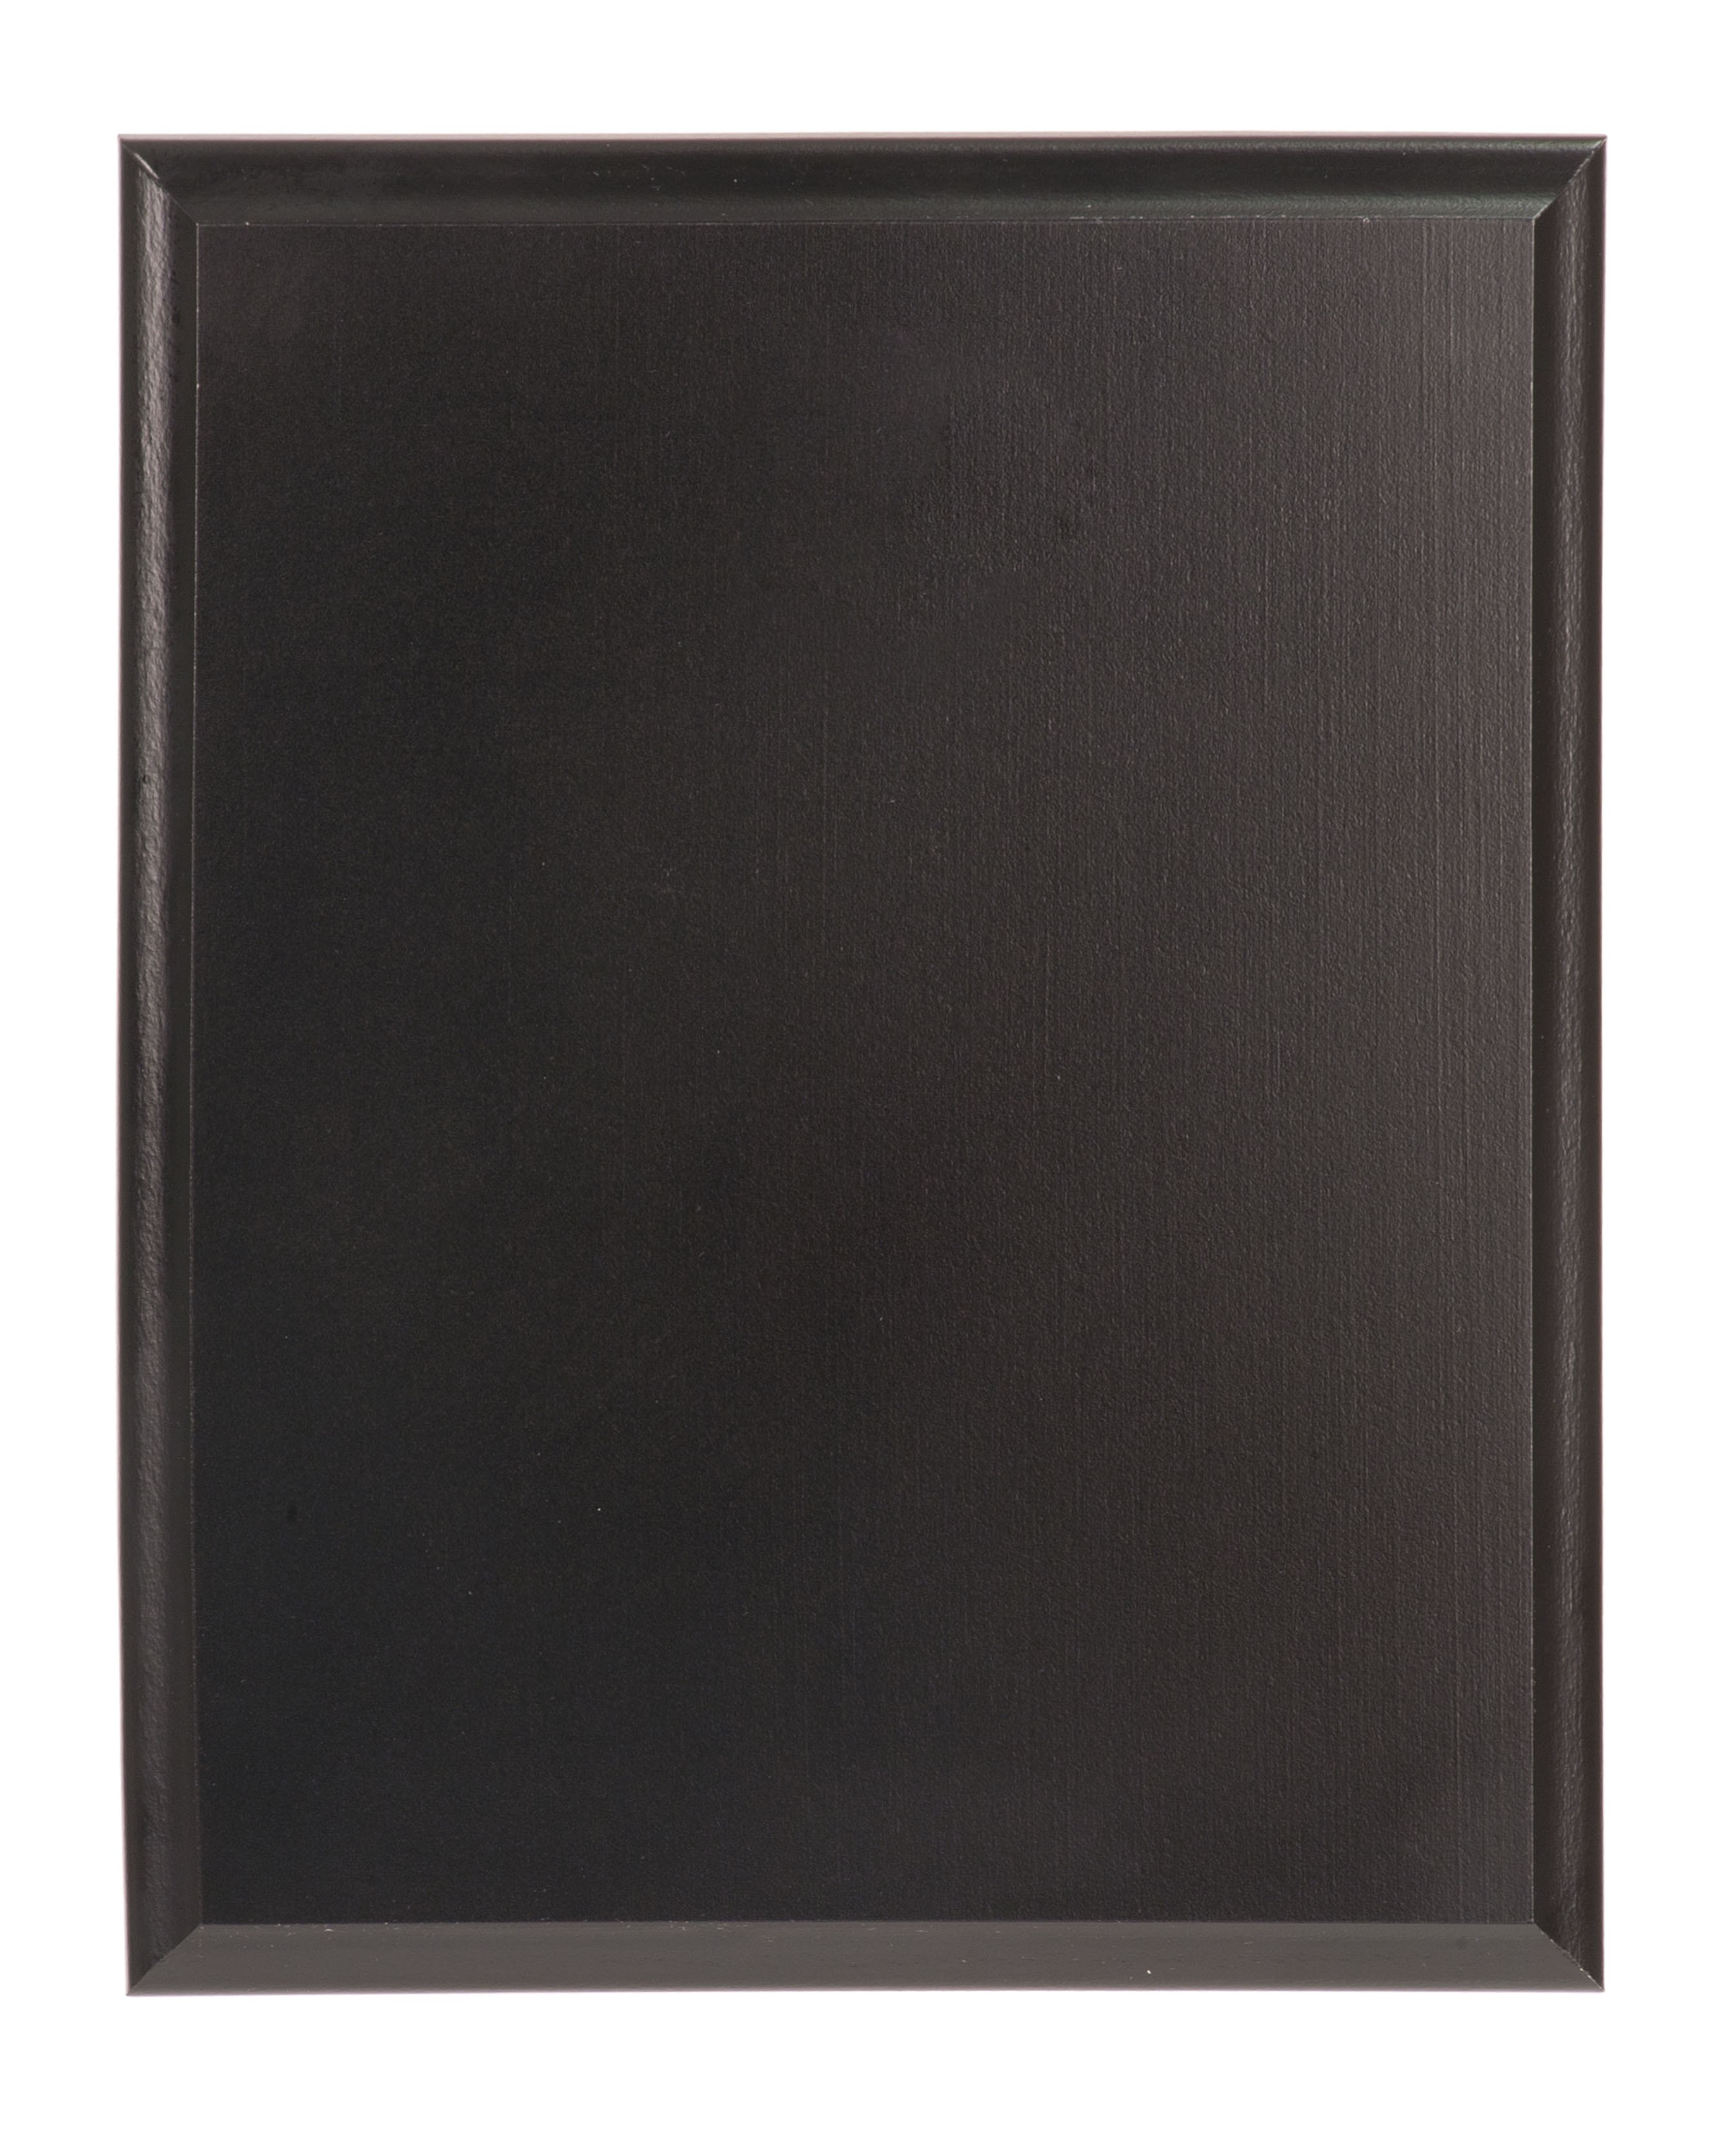 "Value 8"" x 10"" Solid Black Finish Plaque"